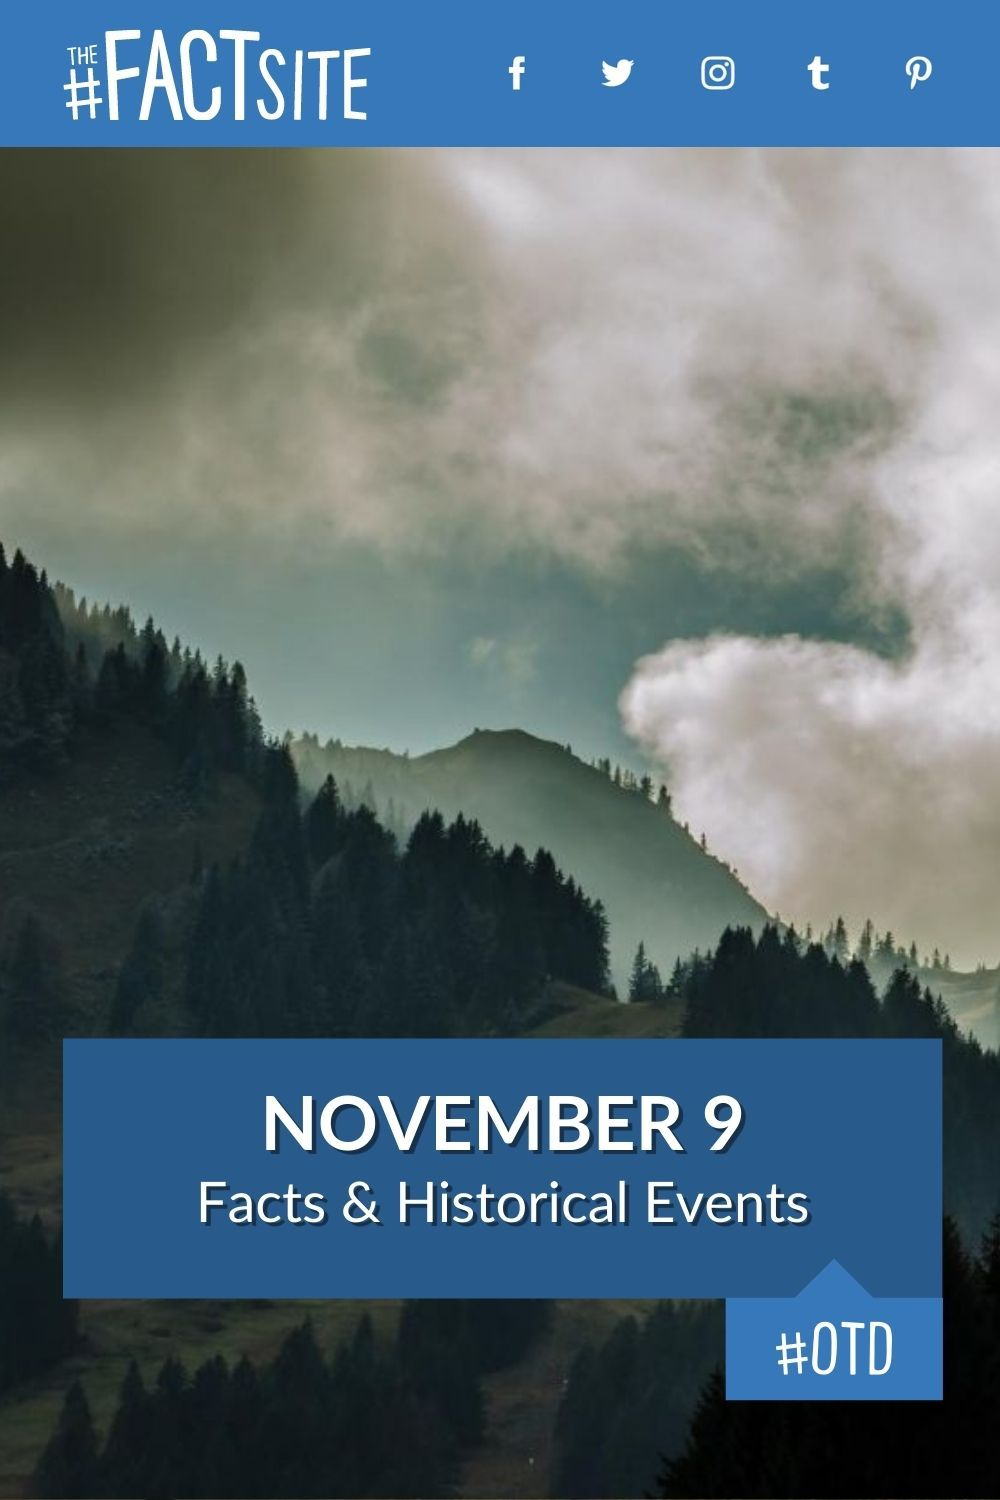 Facts & Historic Events That Happened on November 9